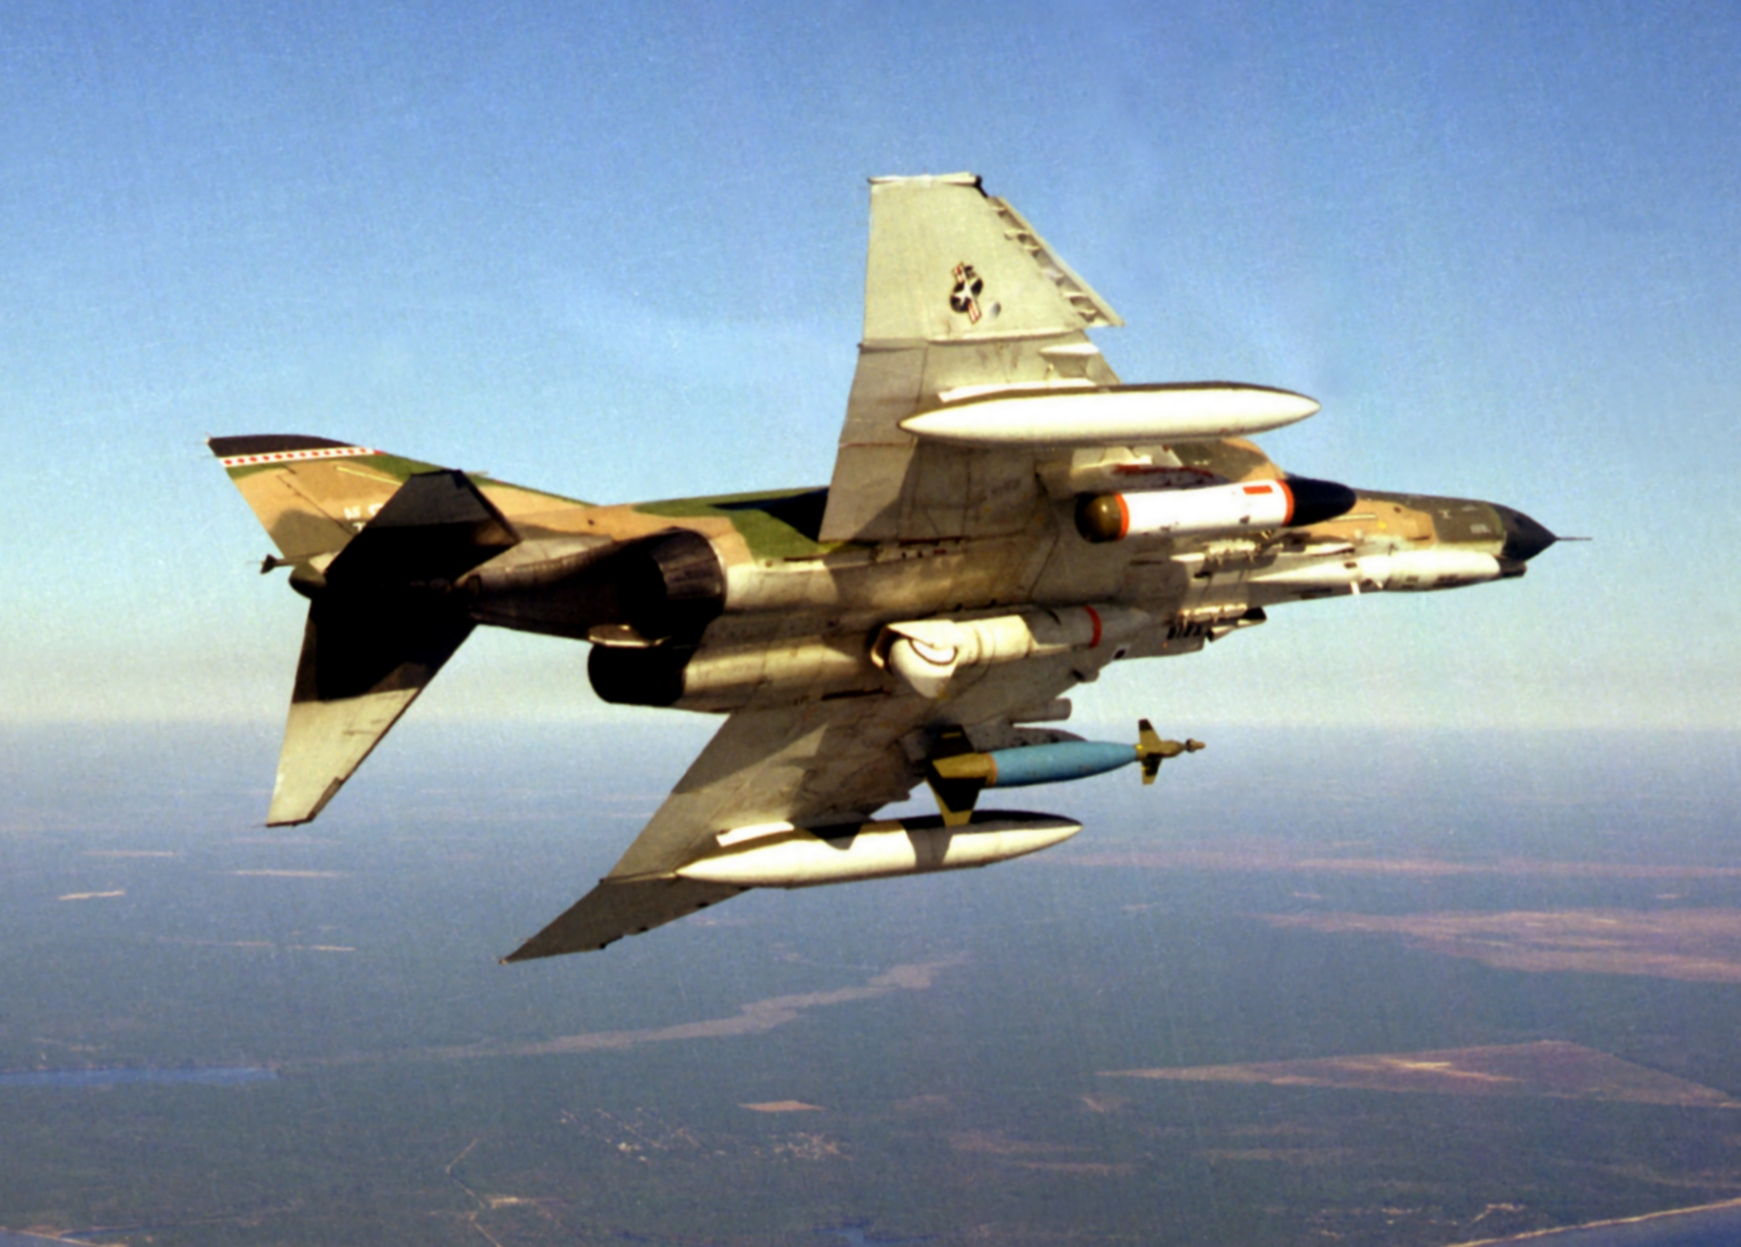 Paveway! Former F-4 GIB tells the Story of one of the First Ever Laser-Guided Bomb Runs During the Vietnam War